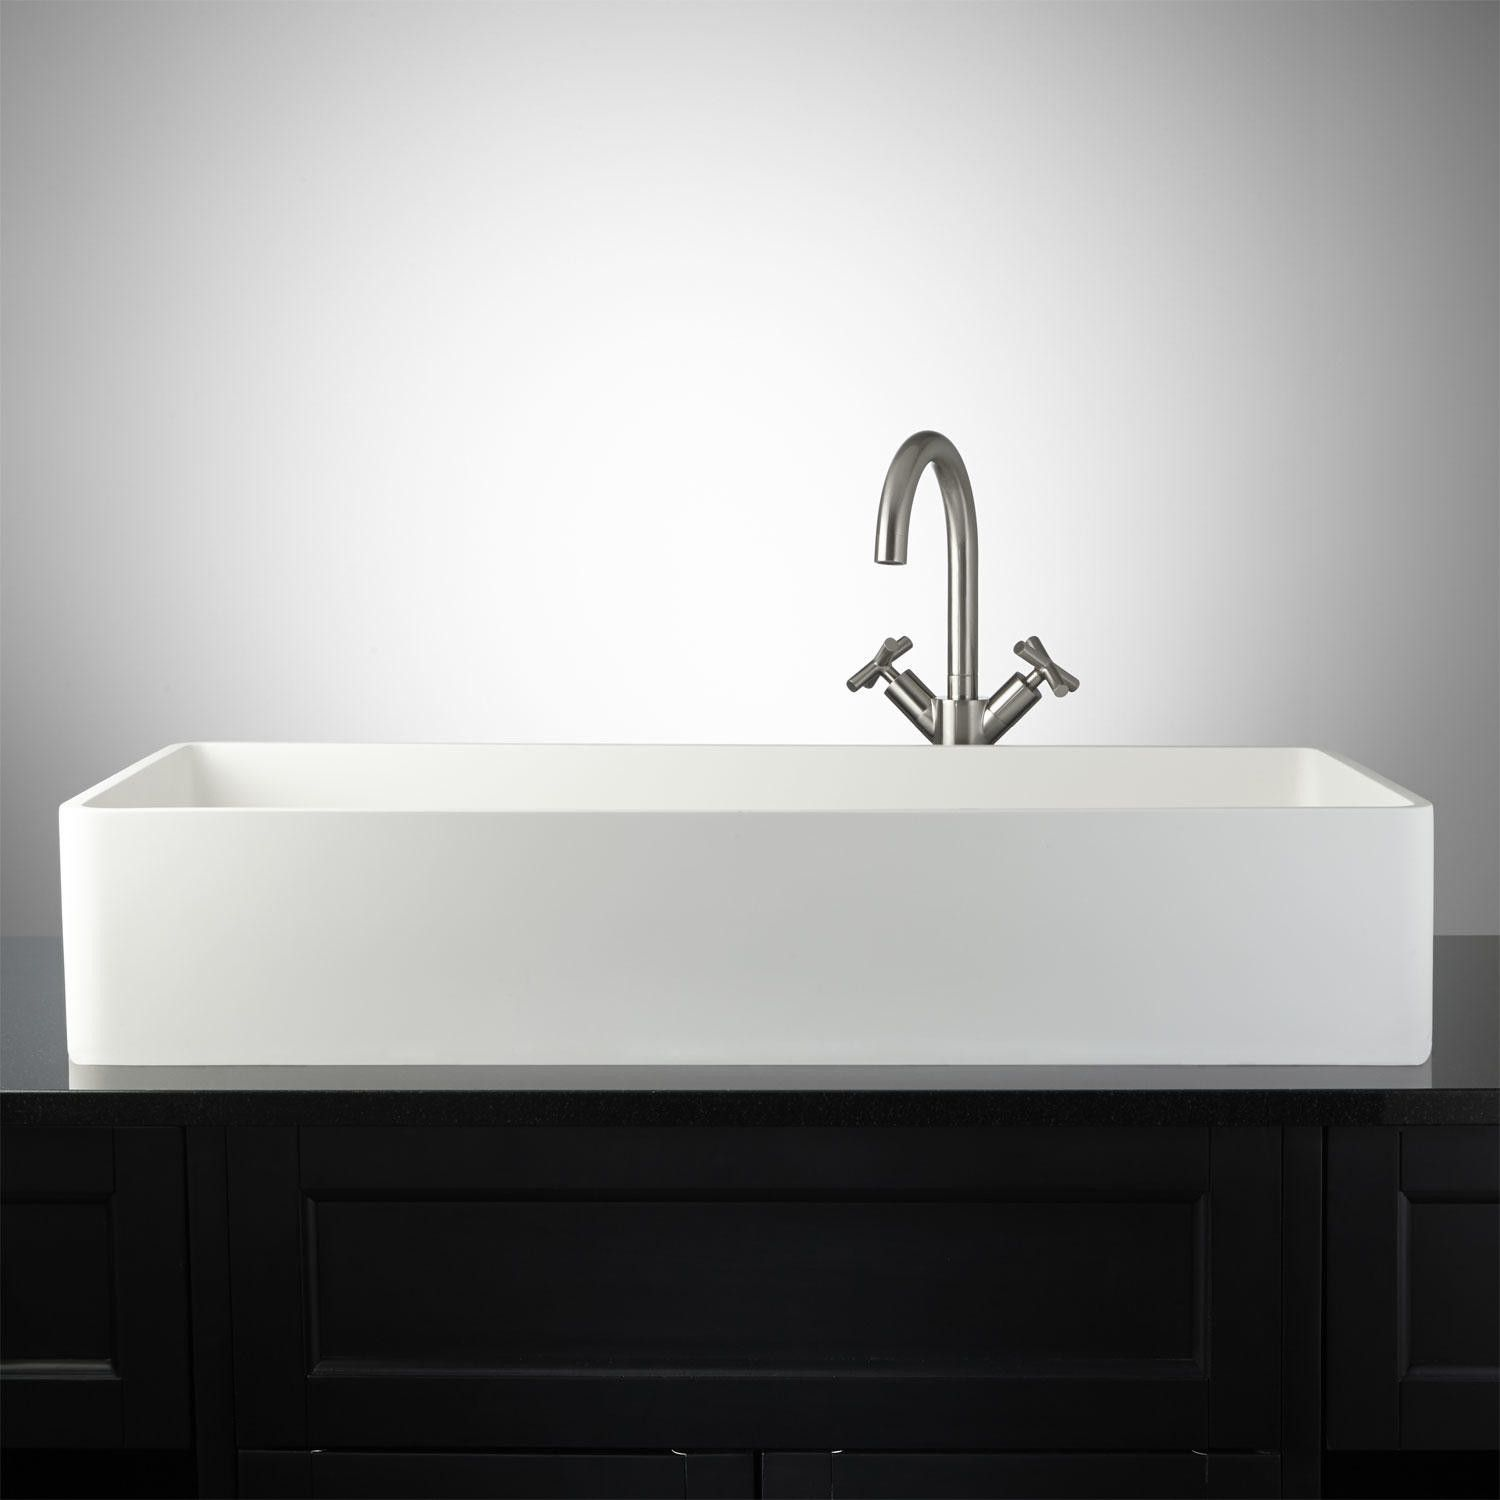 Capella Matte Resin Vessel Sink Bathroom Extra Long For Two